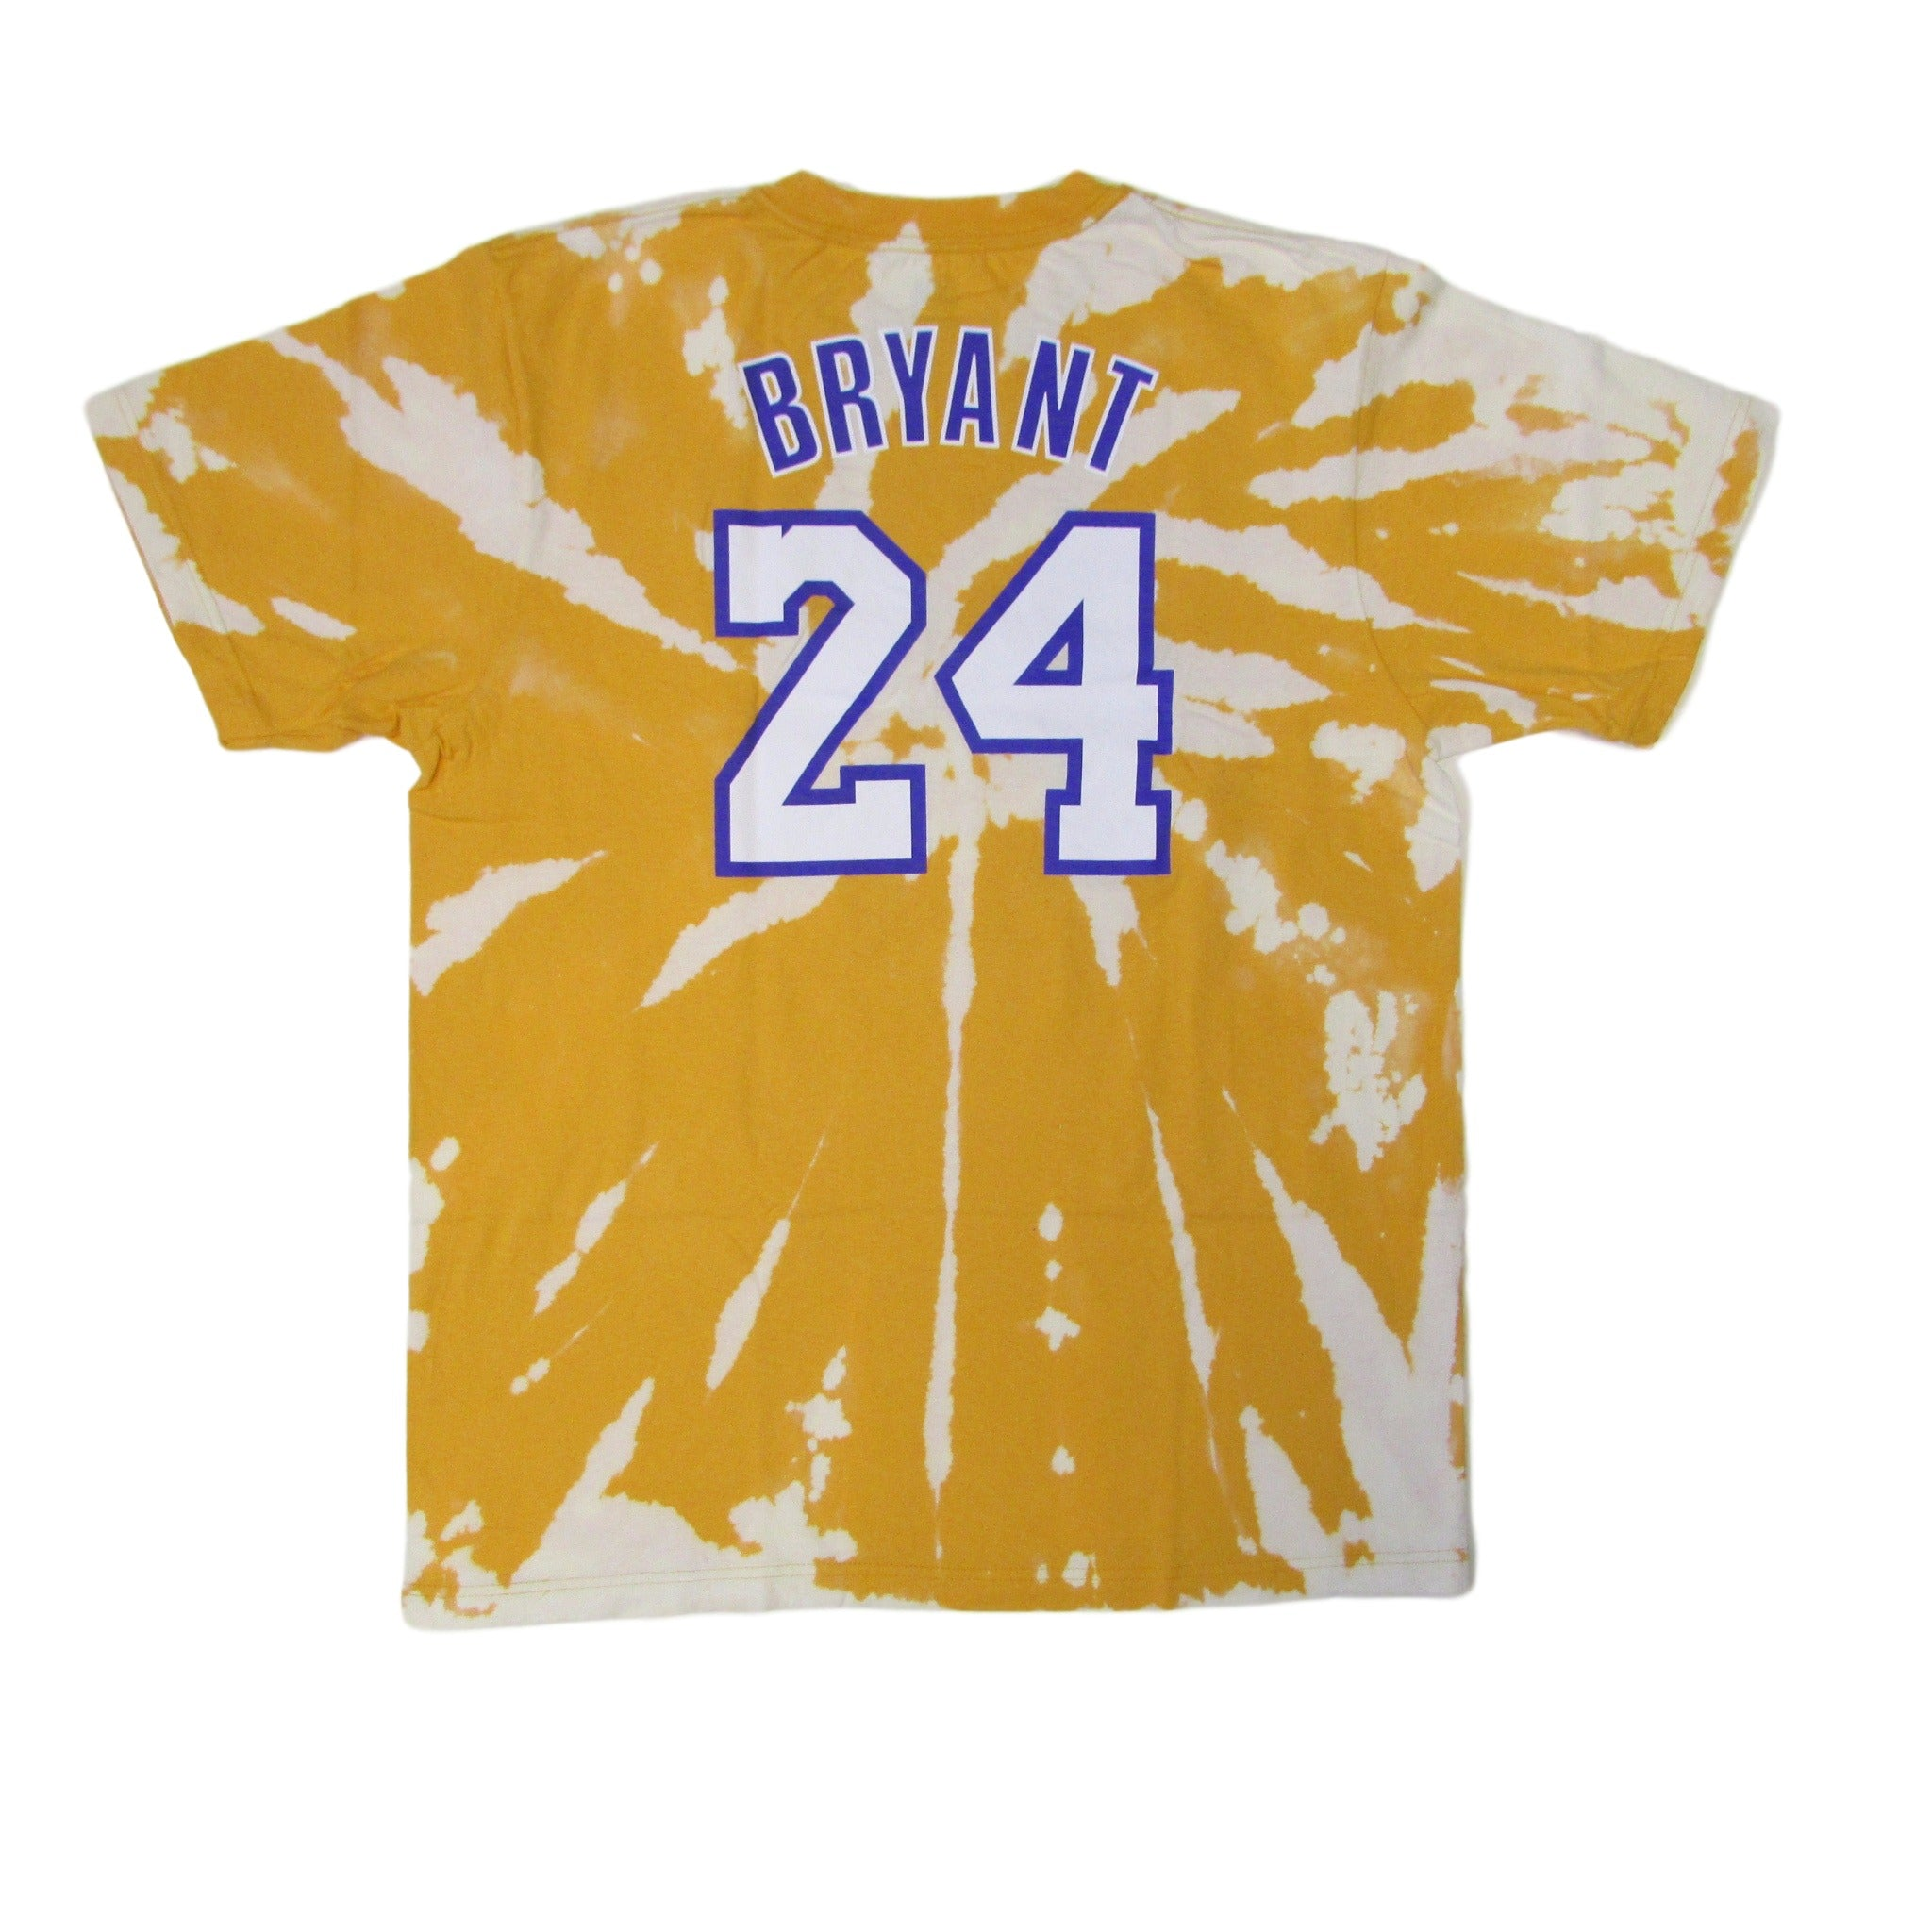 Los Angeles Lakers Tie Dye T-Shirt Kobe Byrant No.24 Sz XL